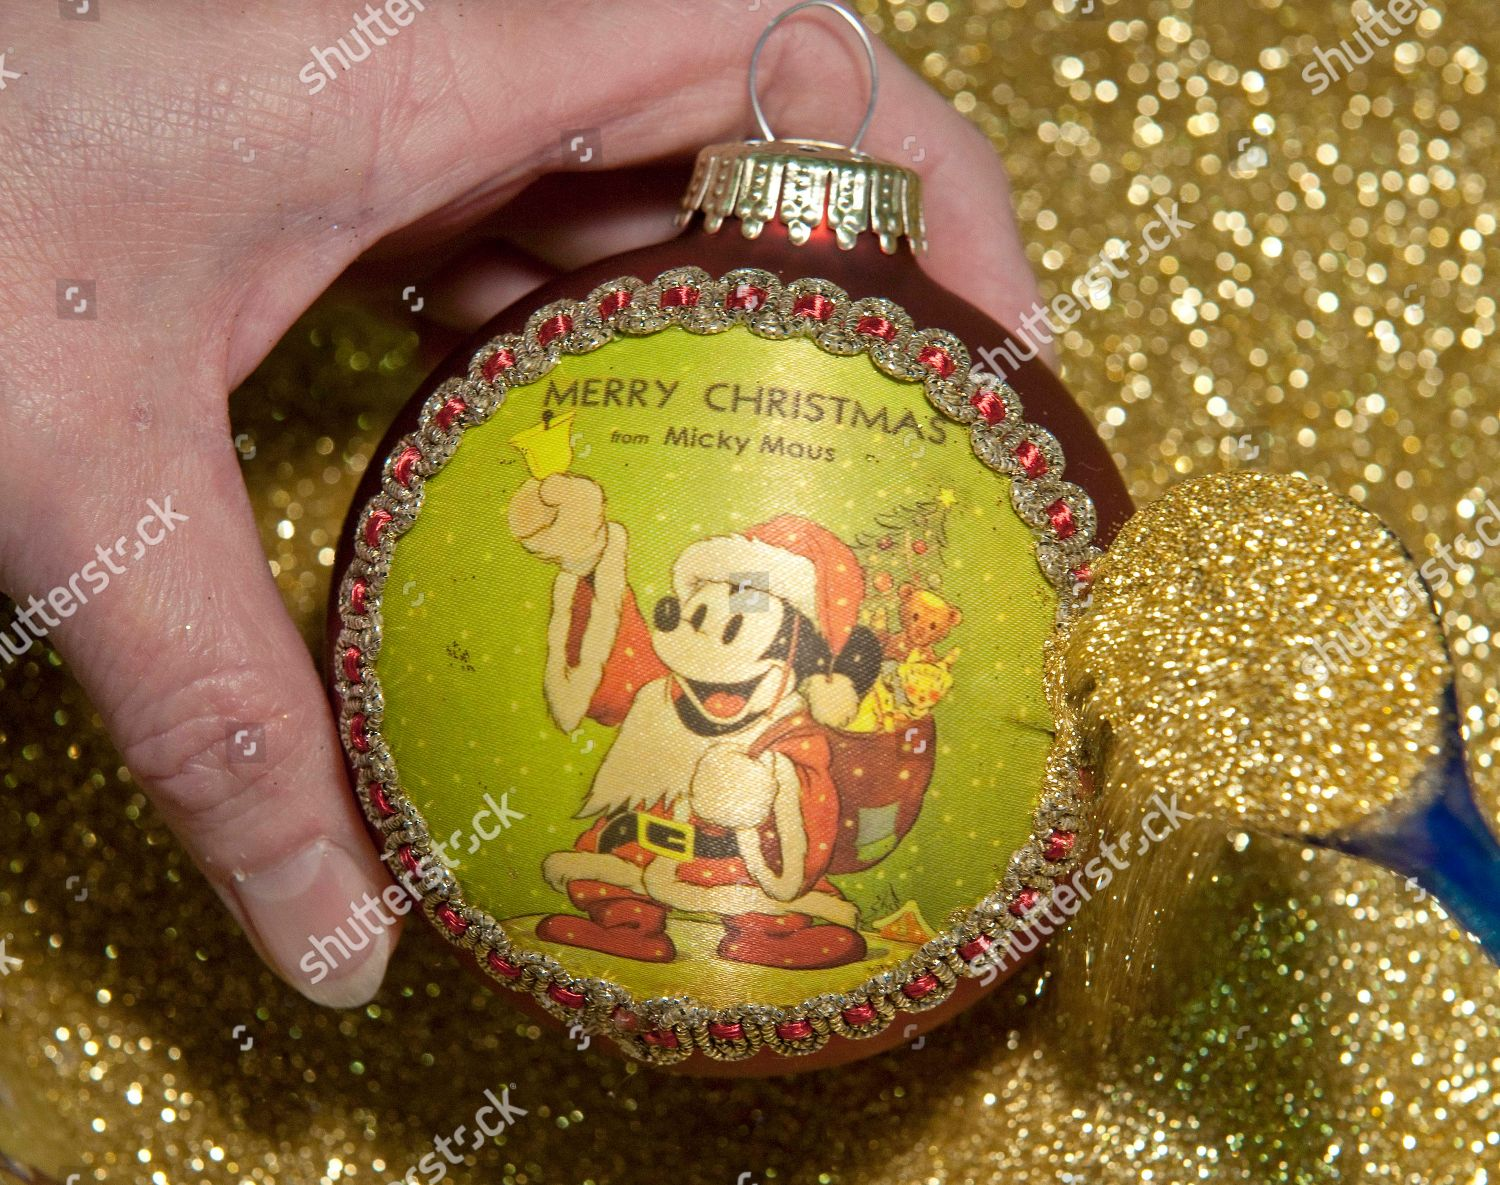 Worker Decorates Disney Christmas Ornament Golden Powder Editorial